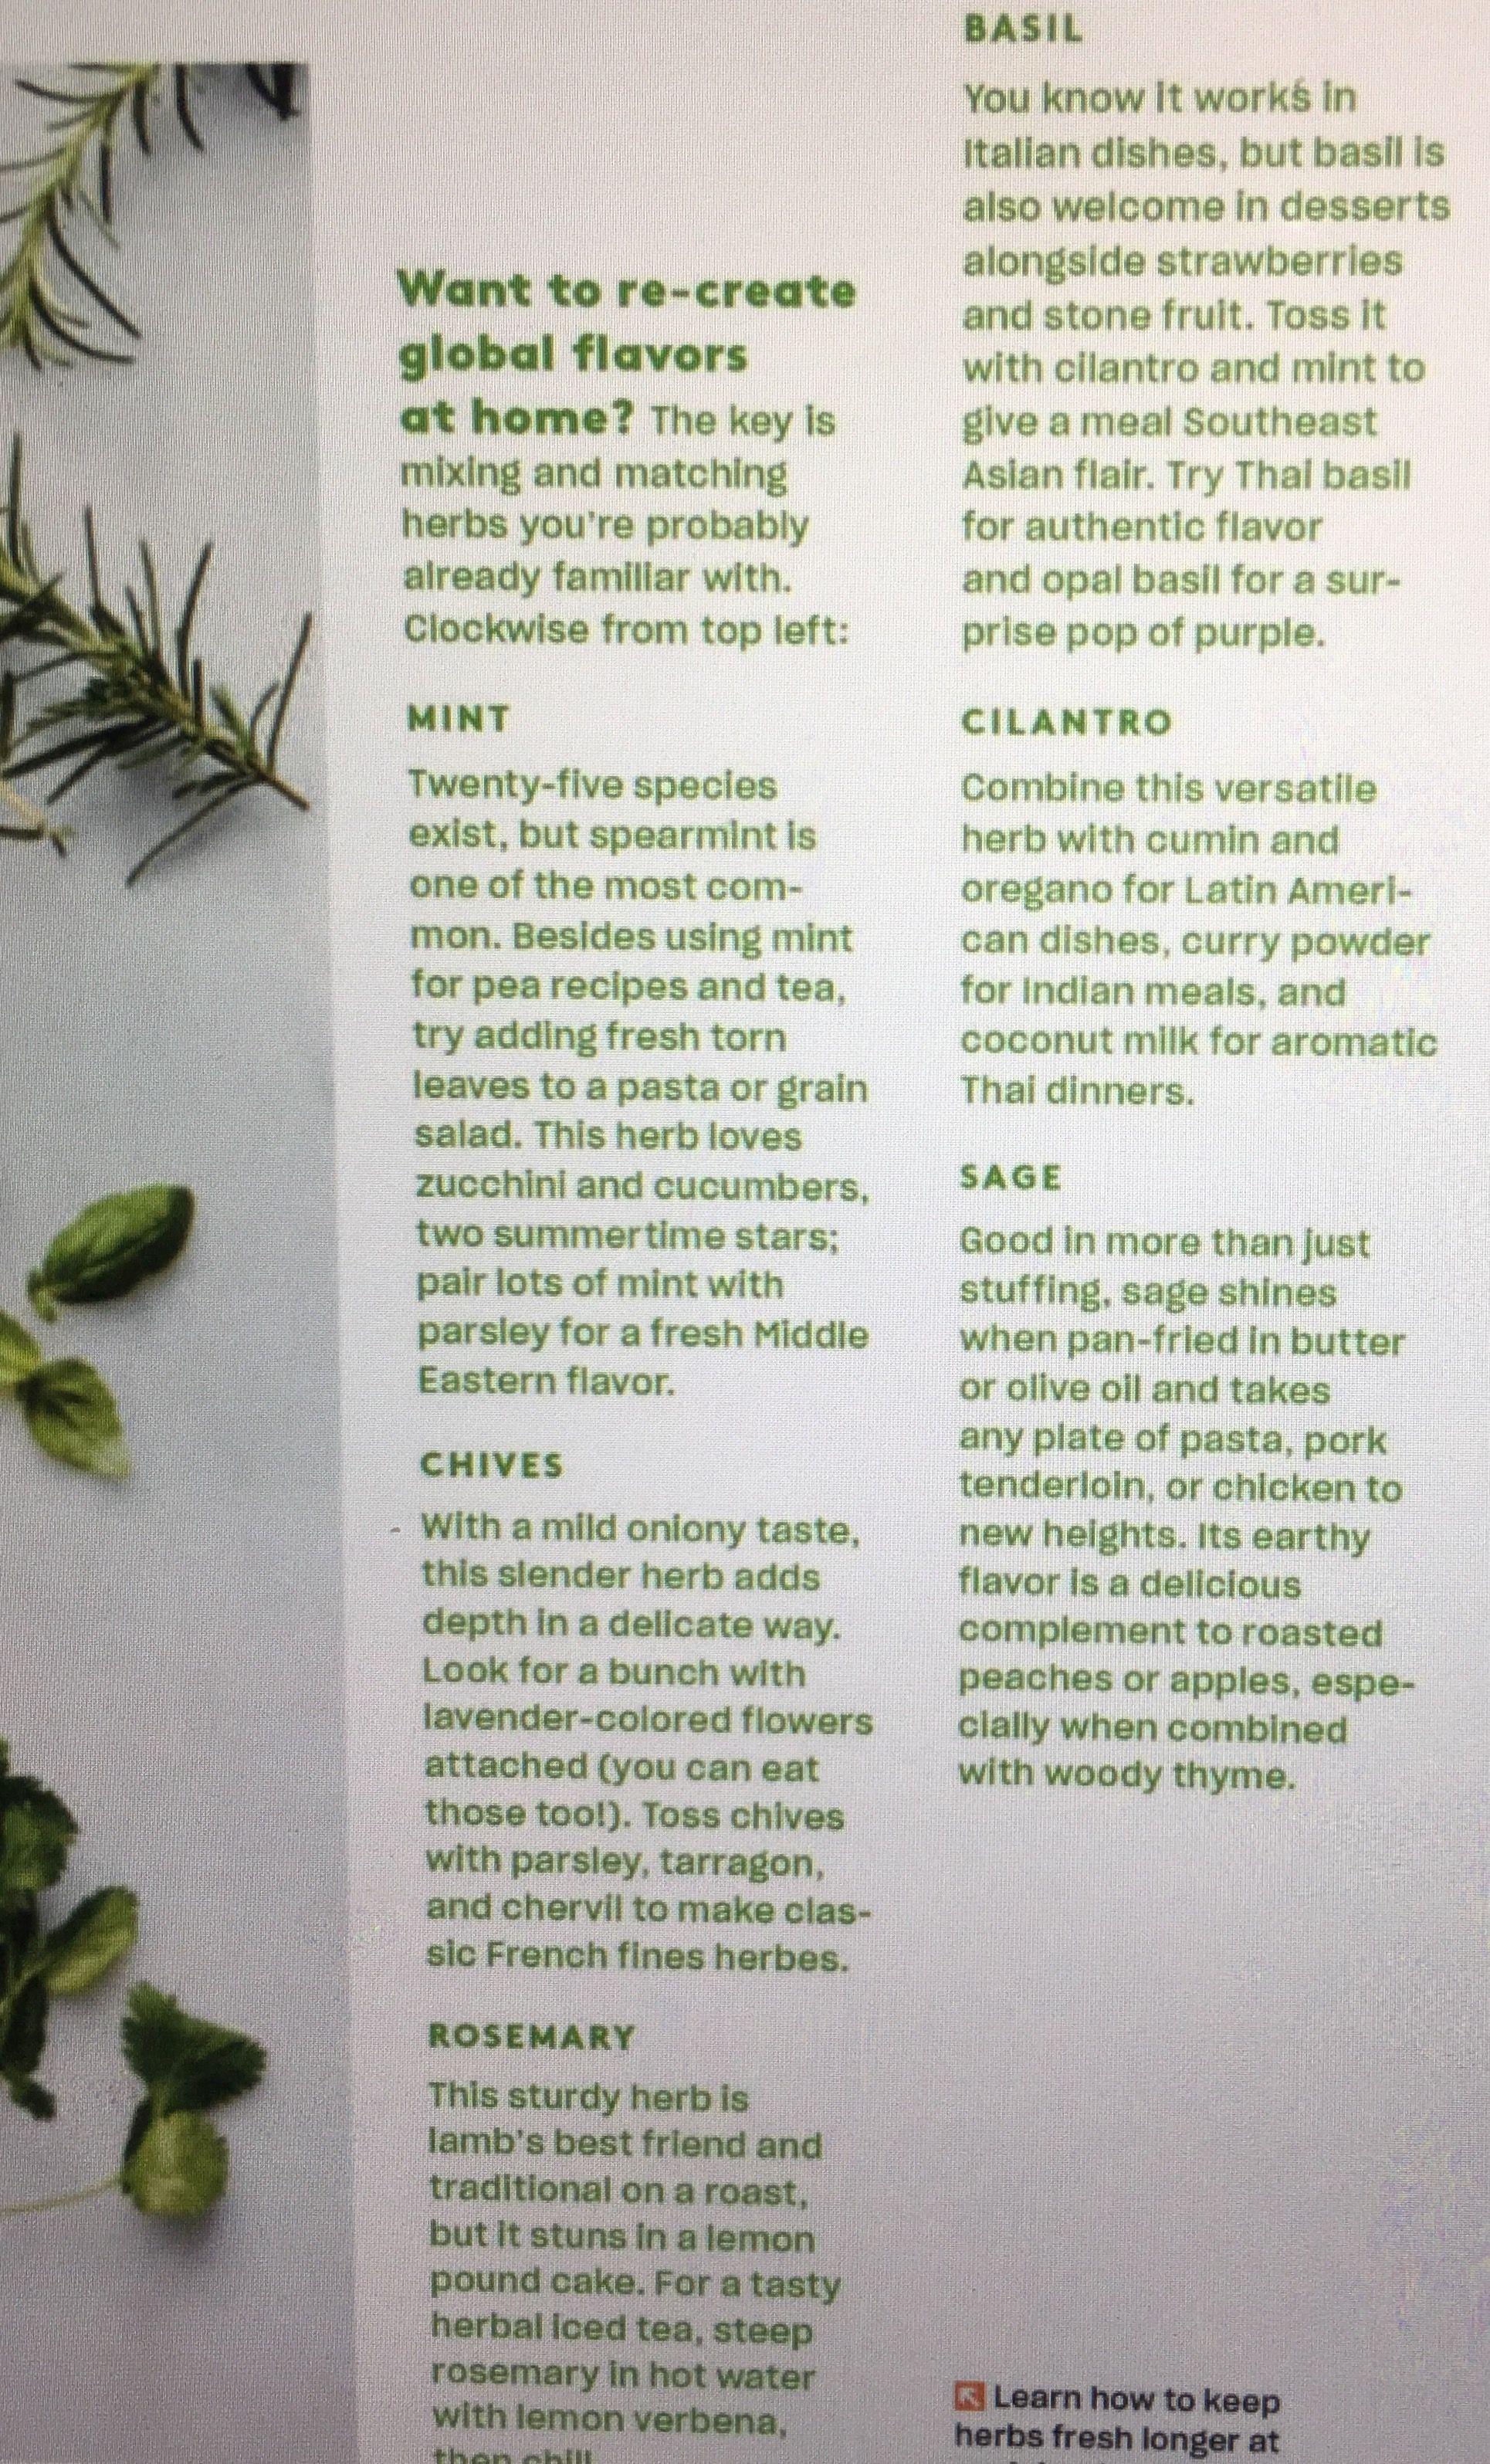 Pin By Bridget Parke On Cooking Odds Ends Global Flavors Basil Herb Stone Fruit